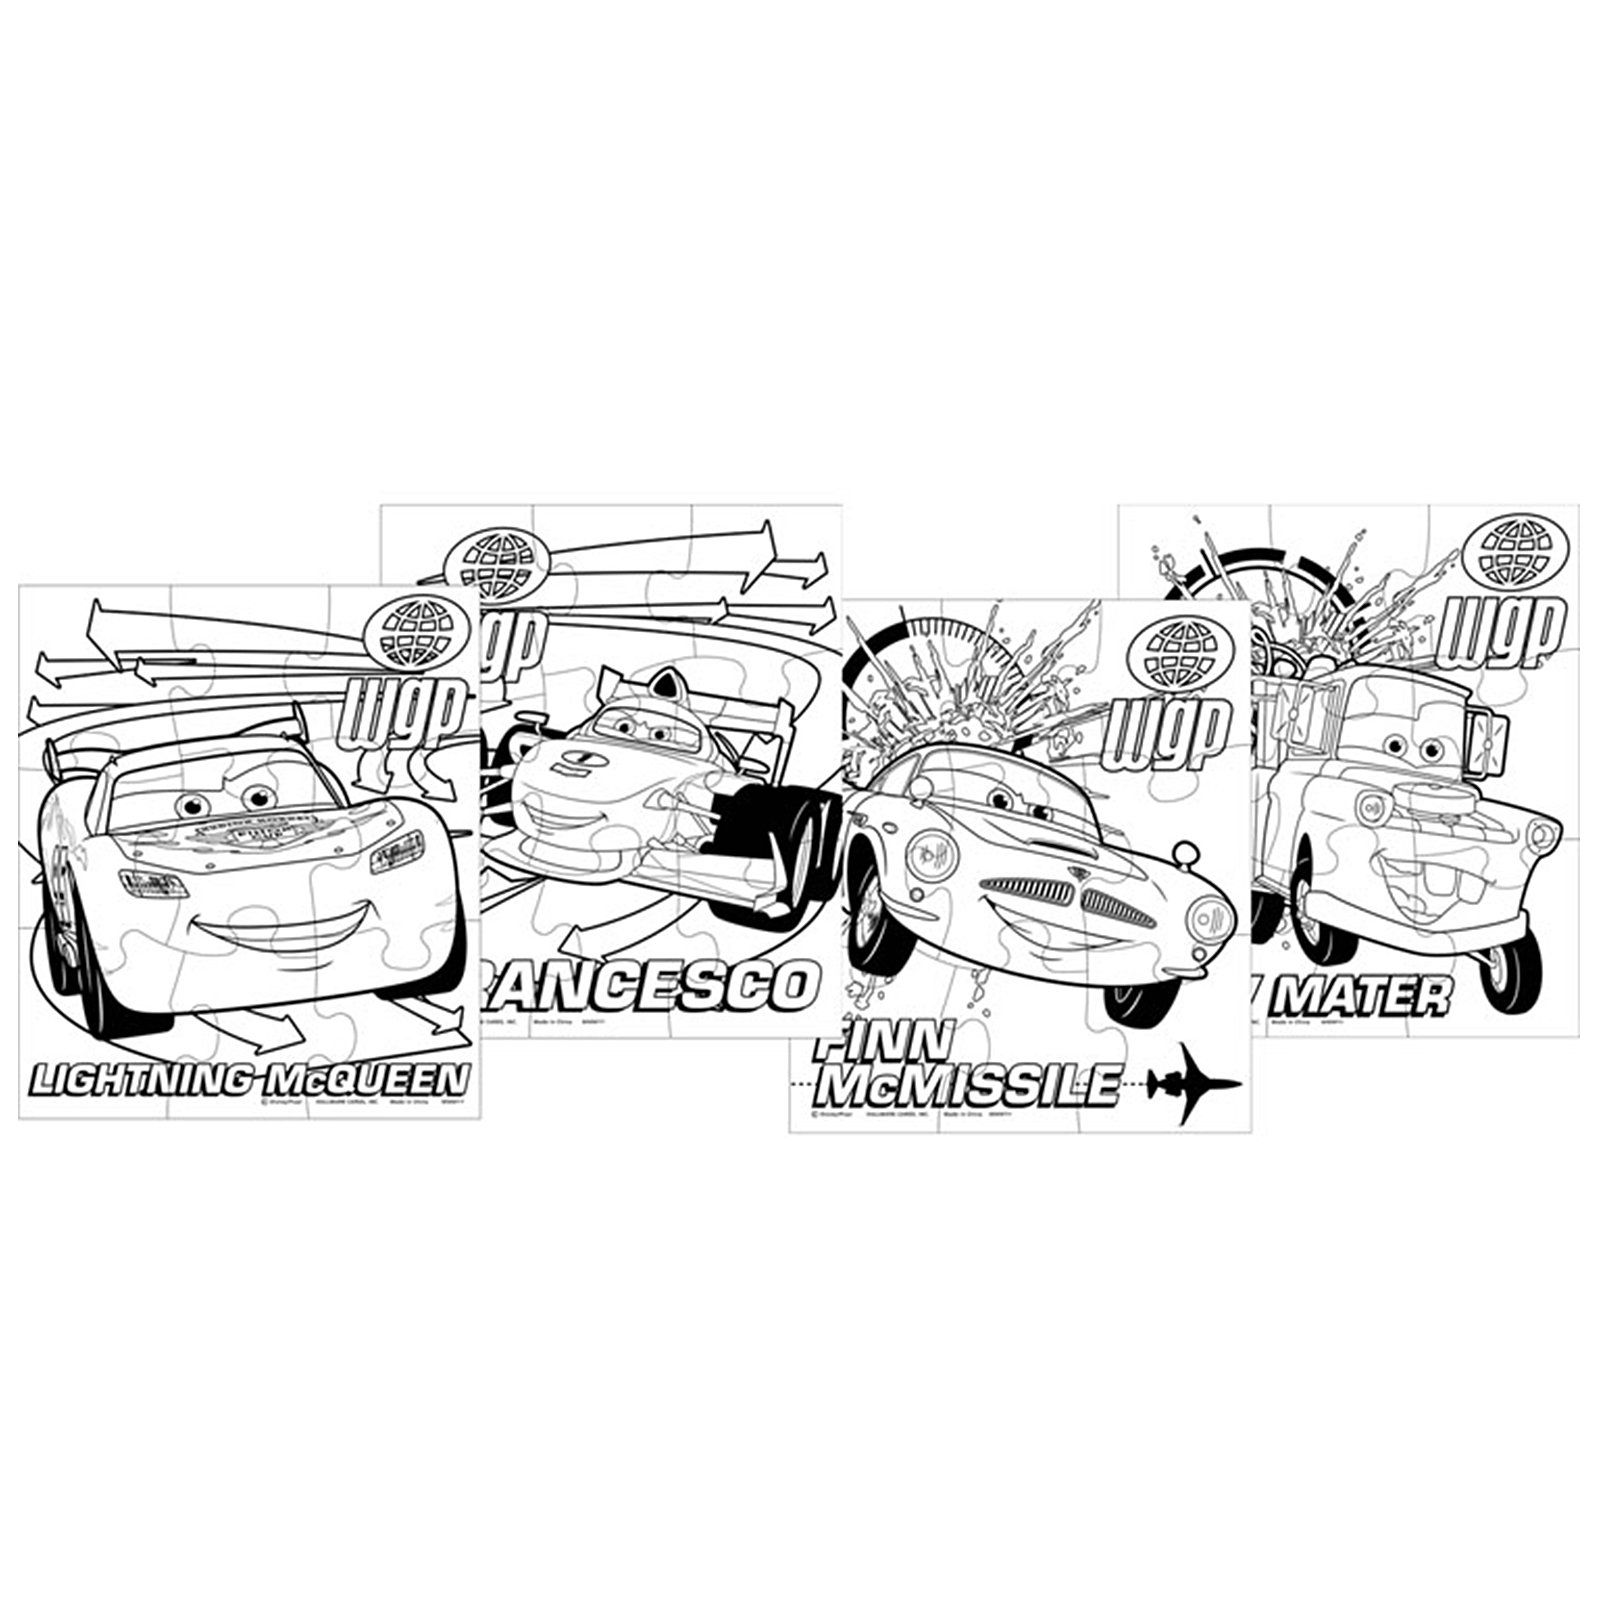 movie cars 2 coloring pages - photo#22